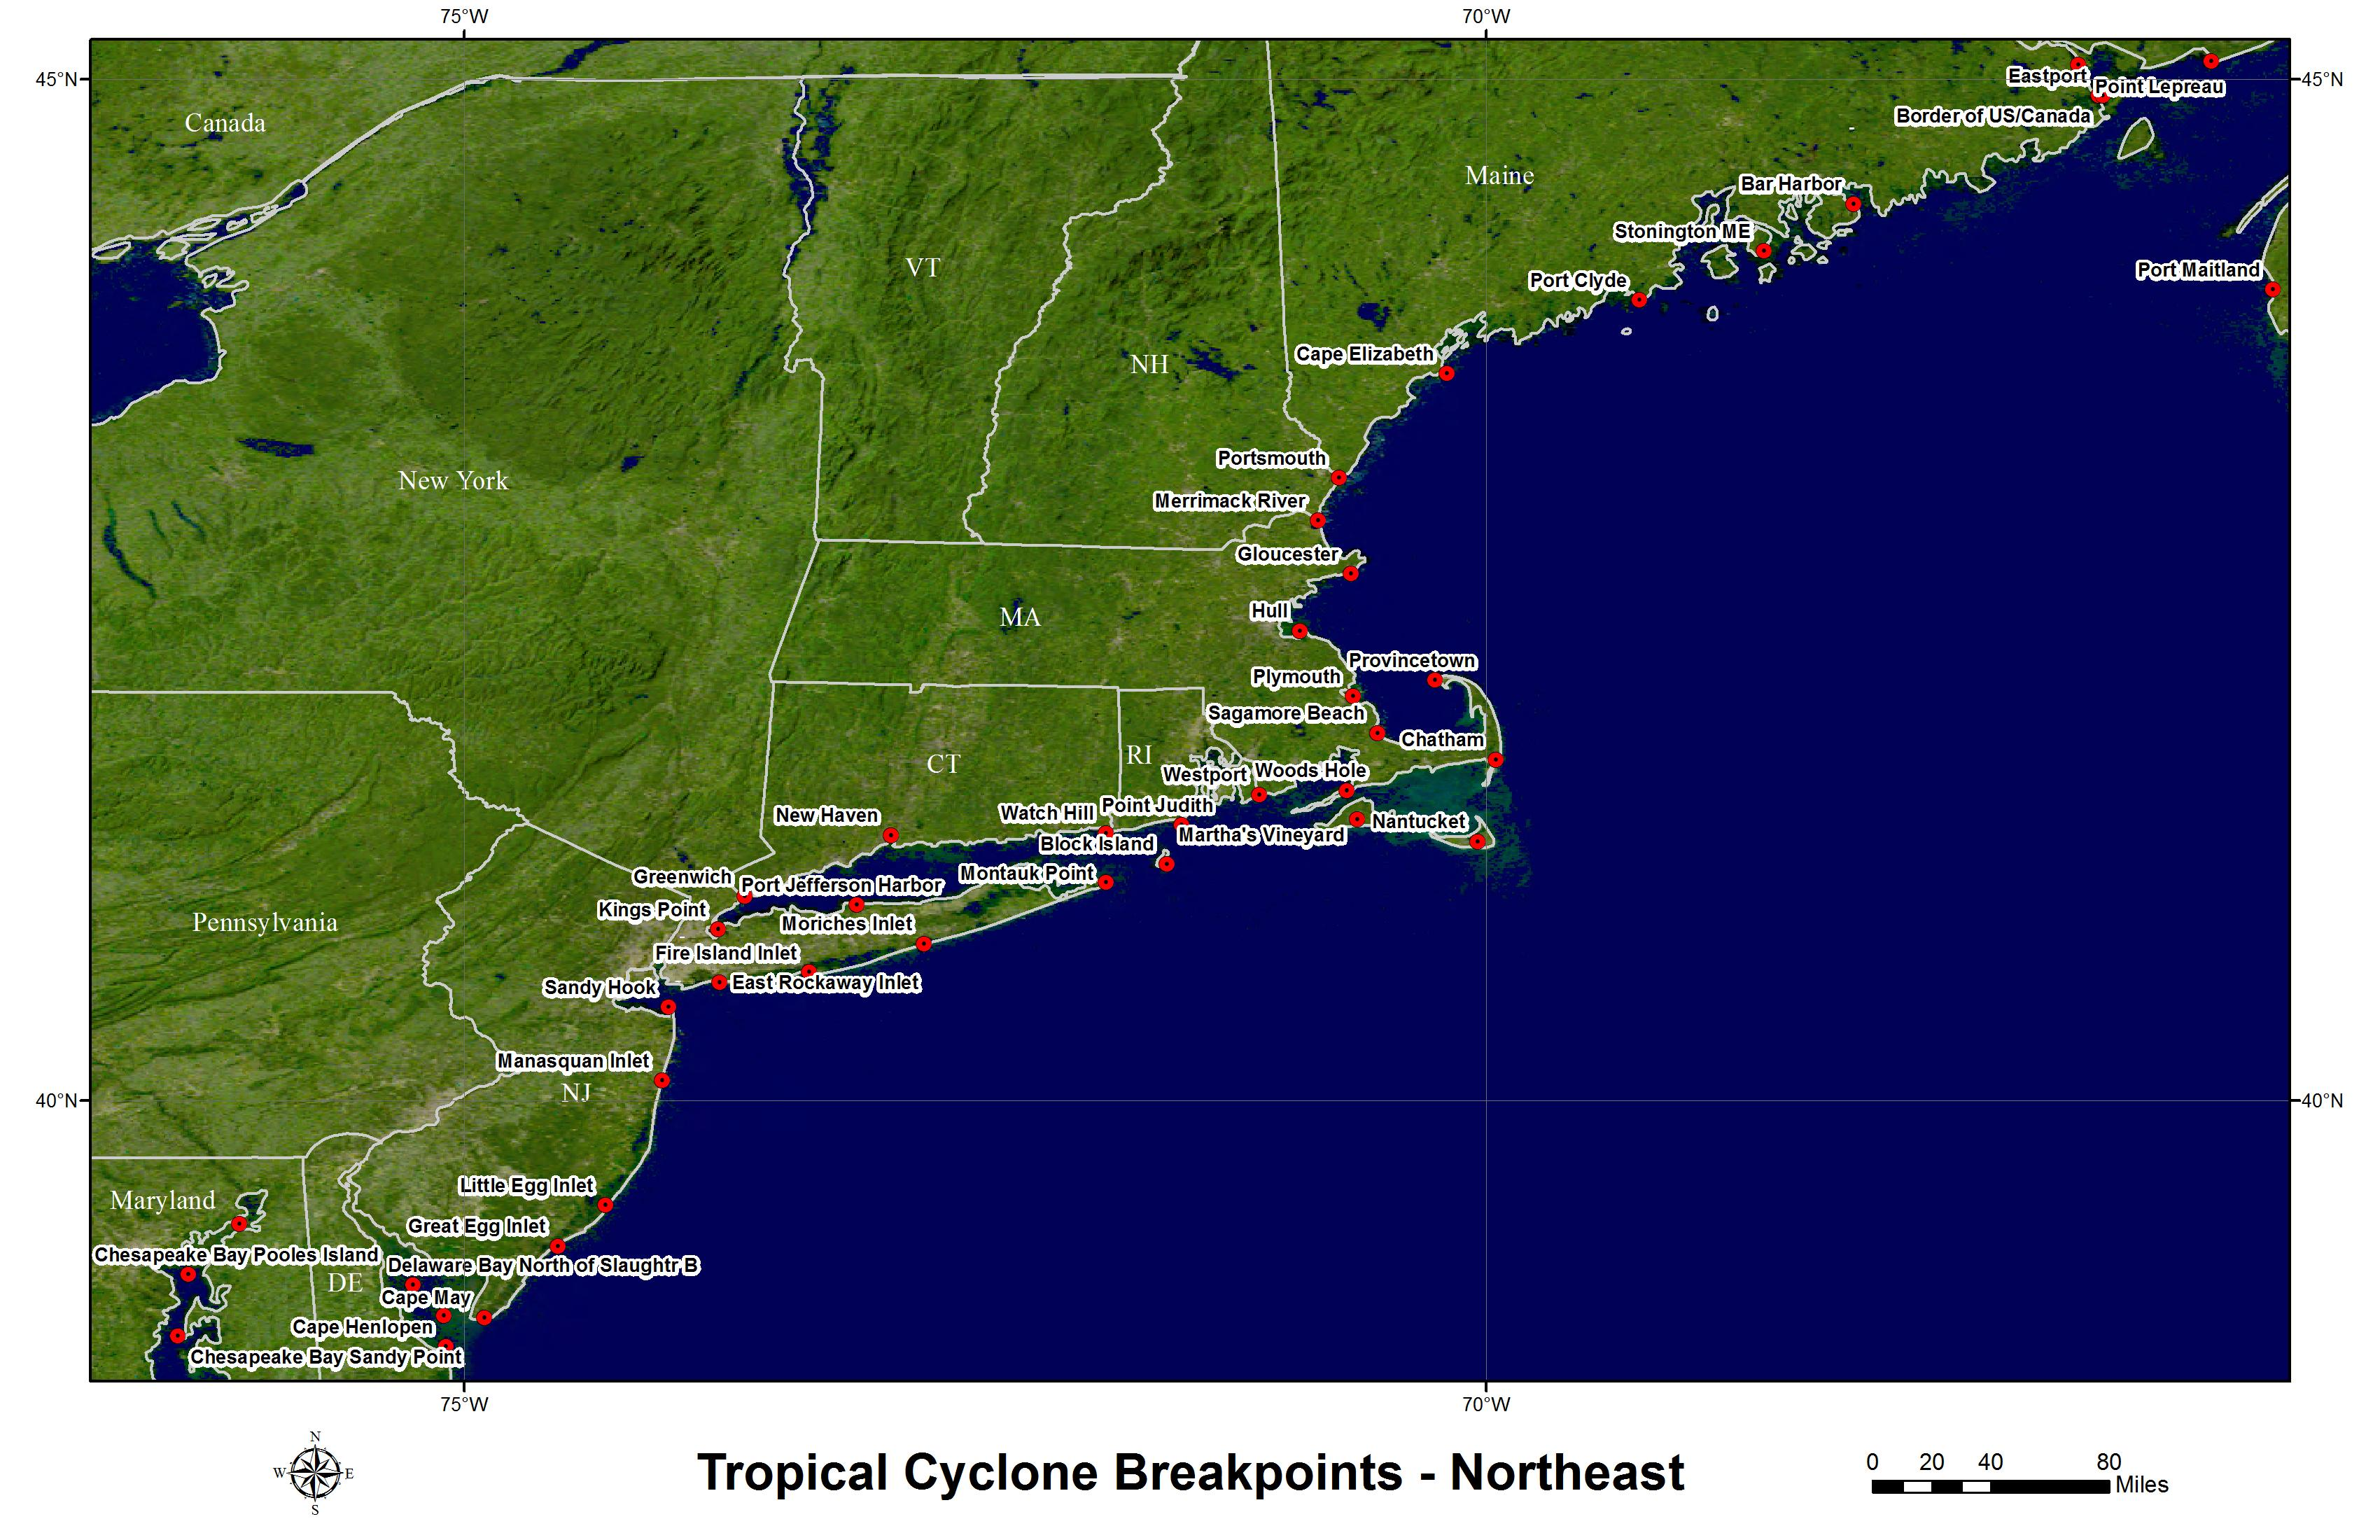 Hurricane and Tropical Storm Watch/Warning Breakpoints